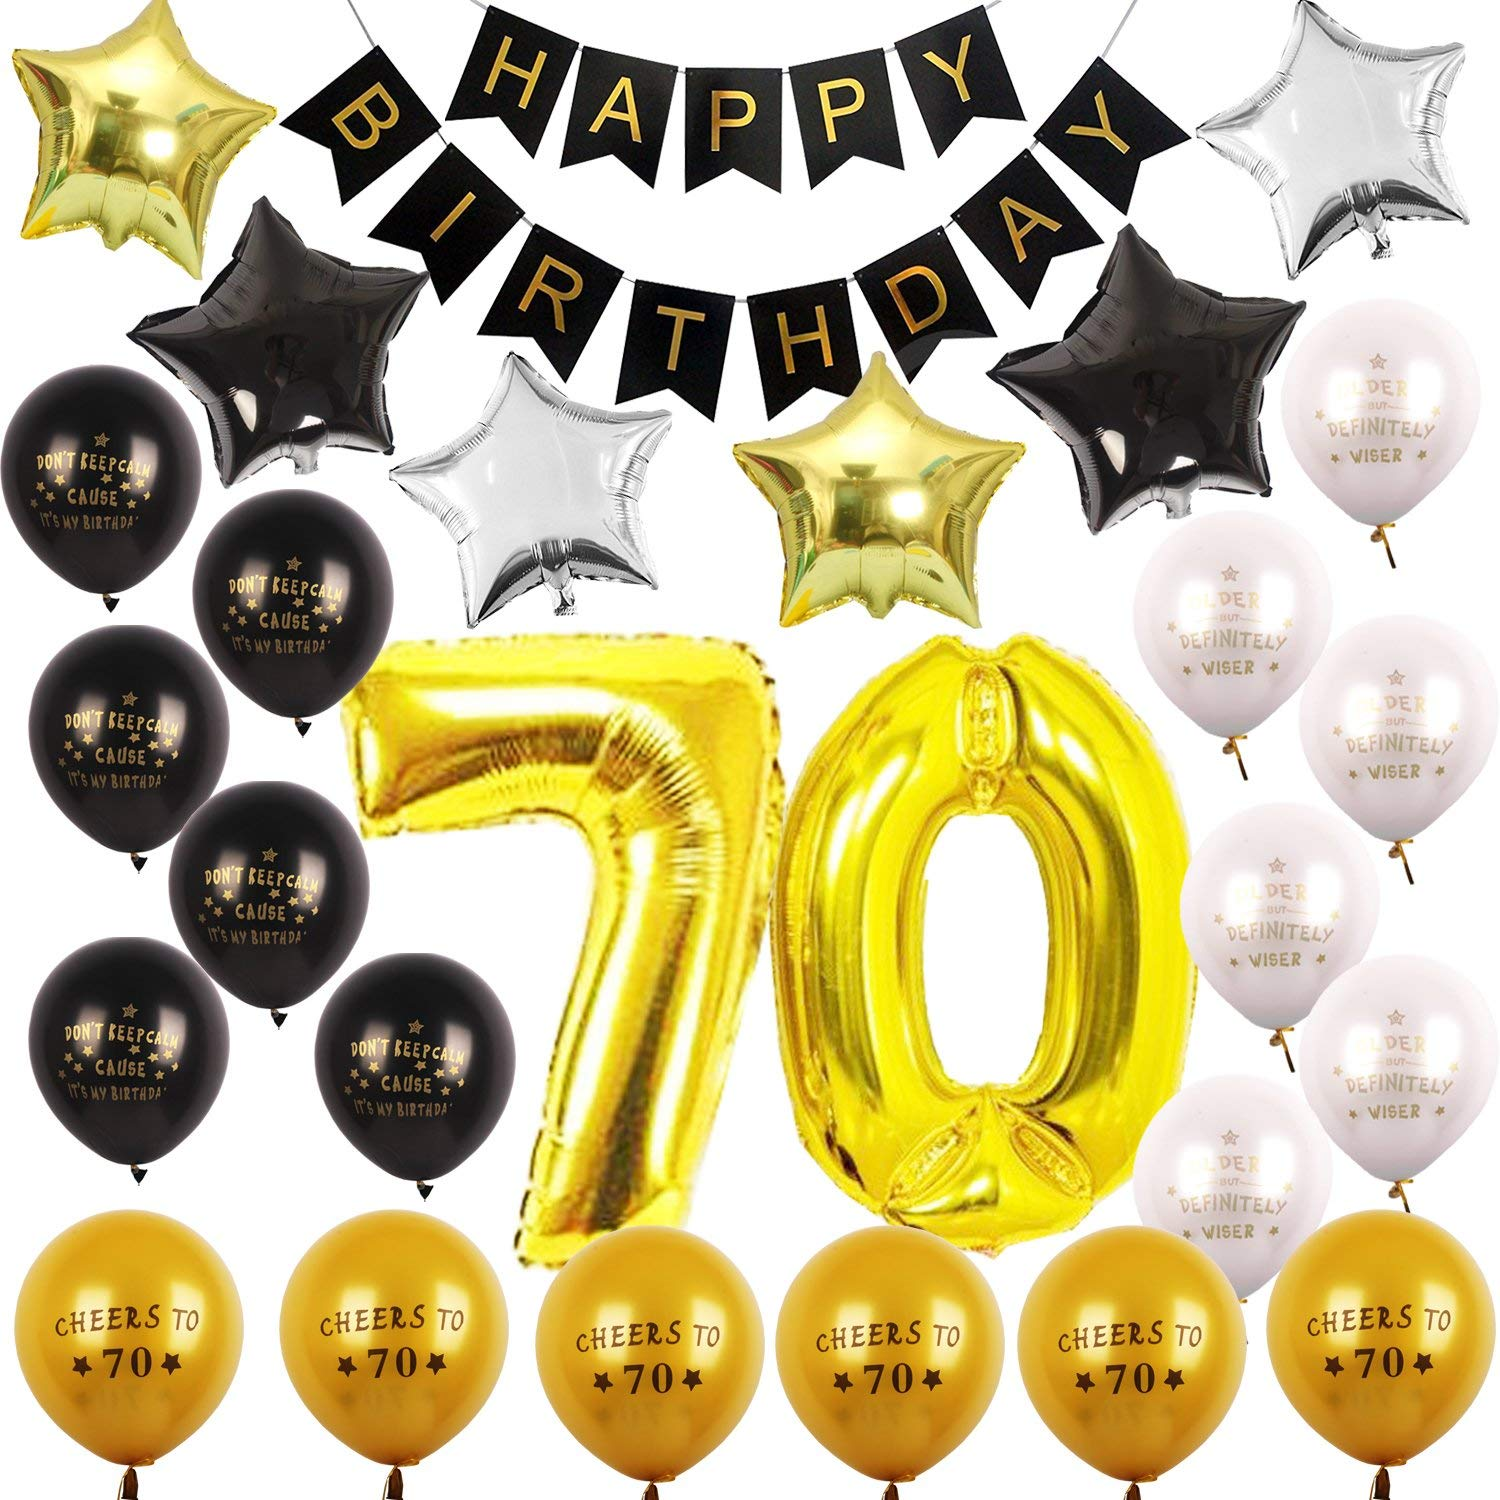 Buy 70th BIRTHDAY PARTY DECORATIONS KIT